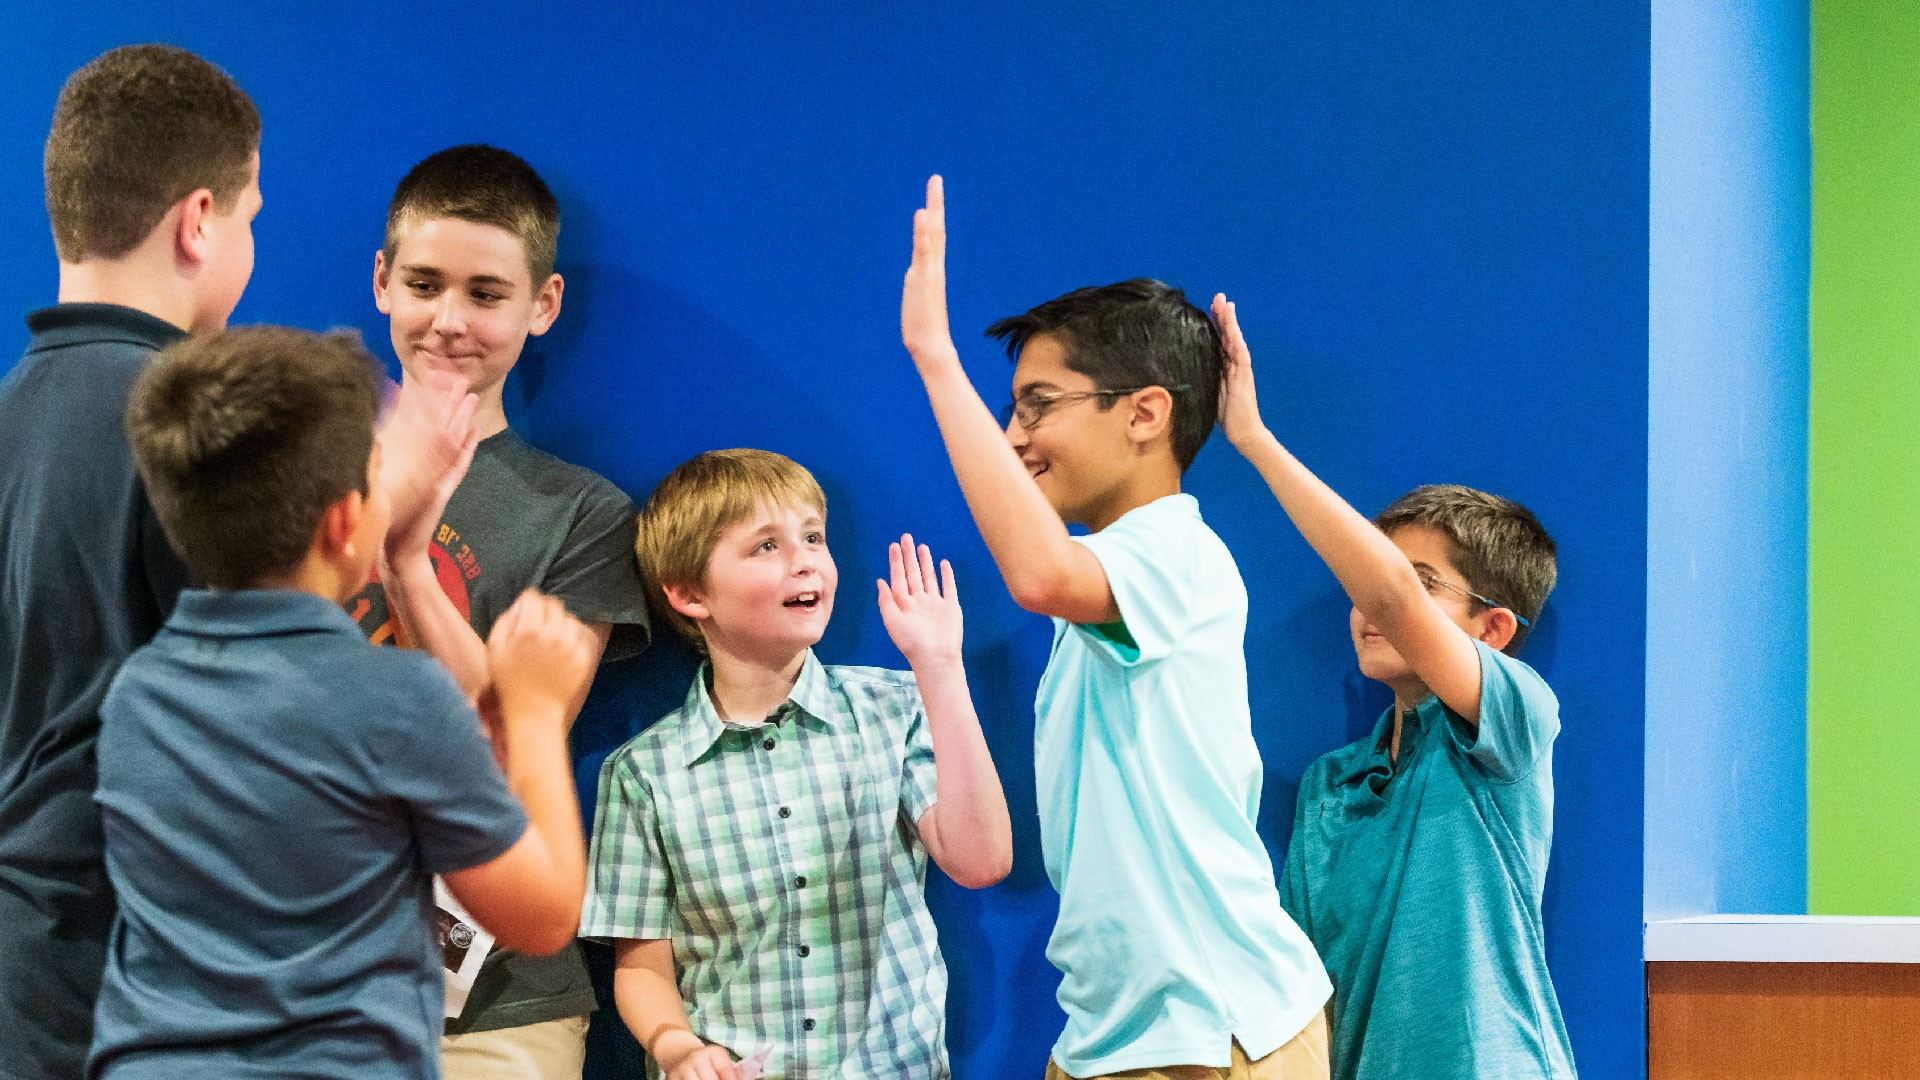 A group of kids high-fiving at Brookwood Church on Sunday